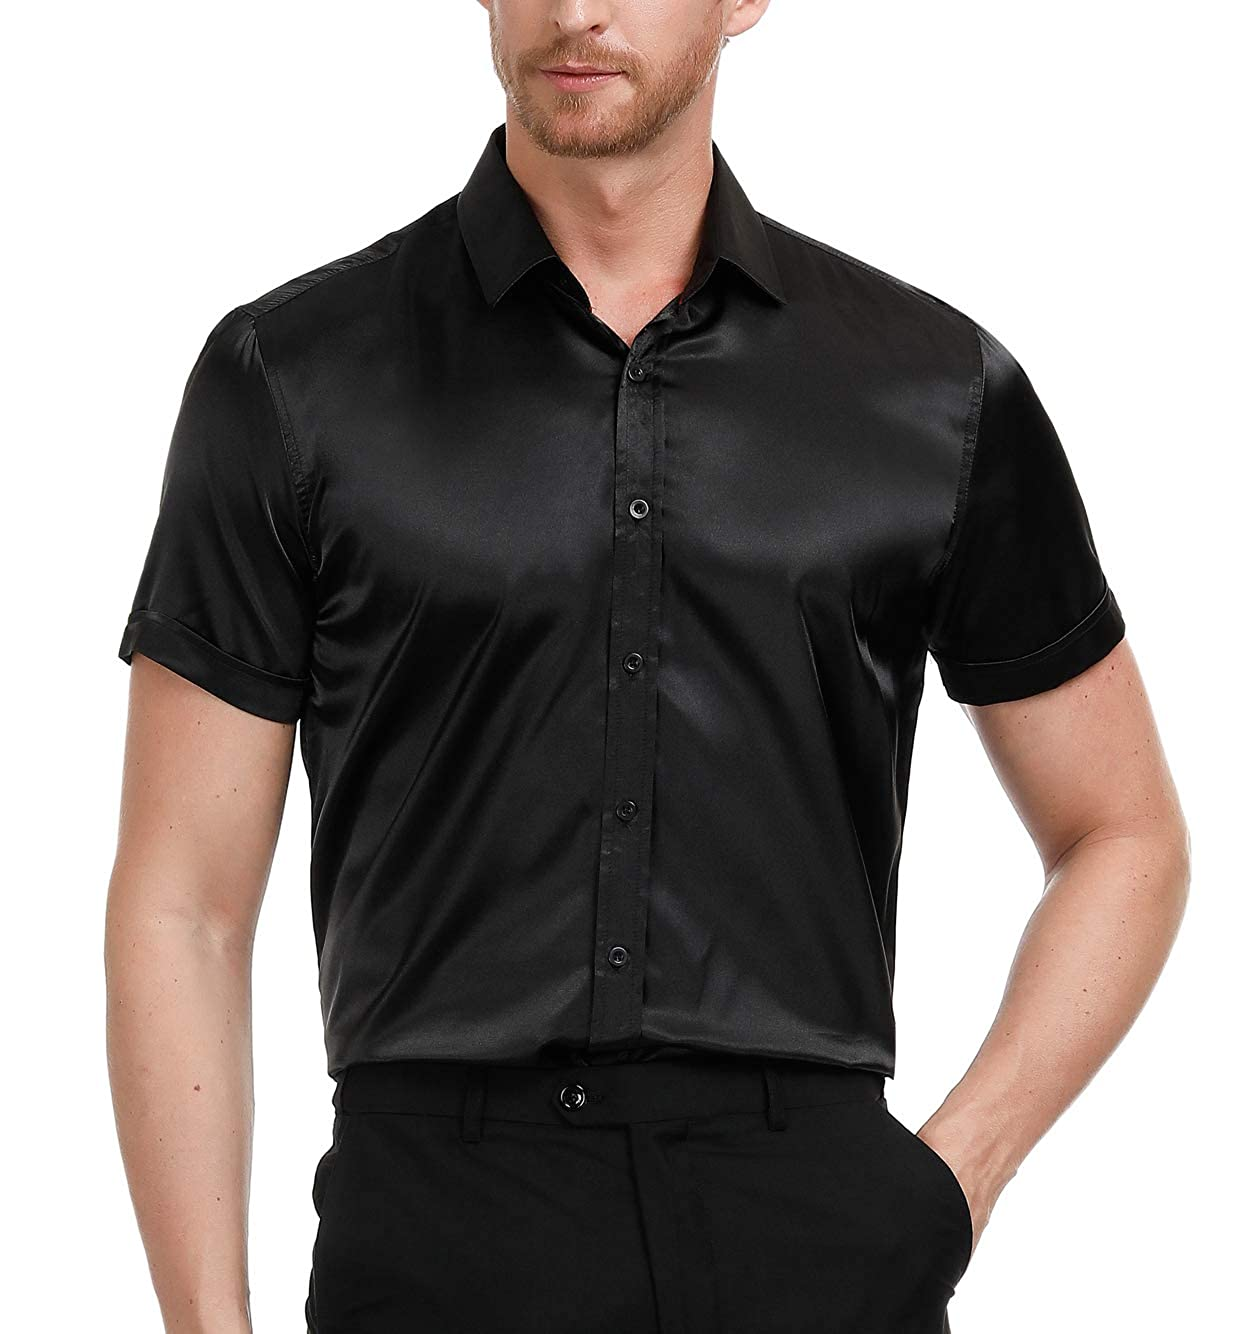 eb386534 Mens Silk Dress Shirt Black | Top Mode Depot